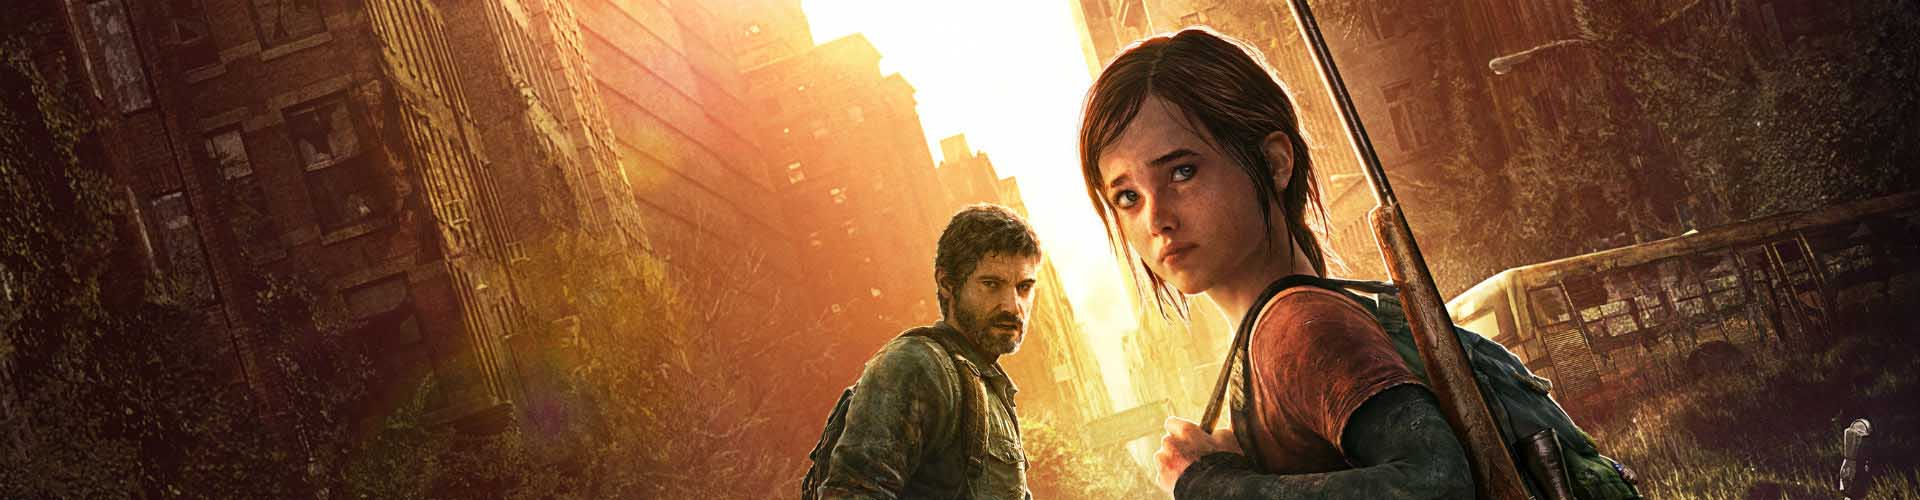 The Last Of Us 2 Release Date, Trailer, News and Rumors